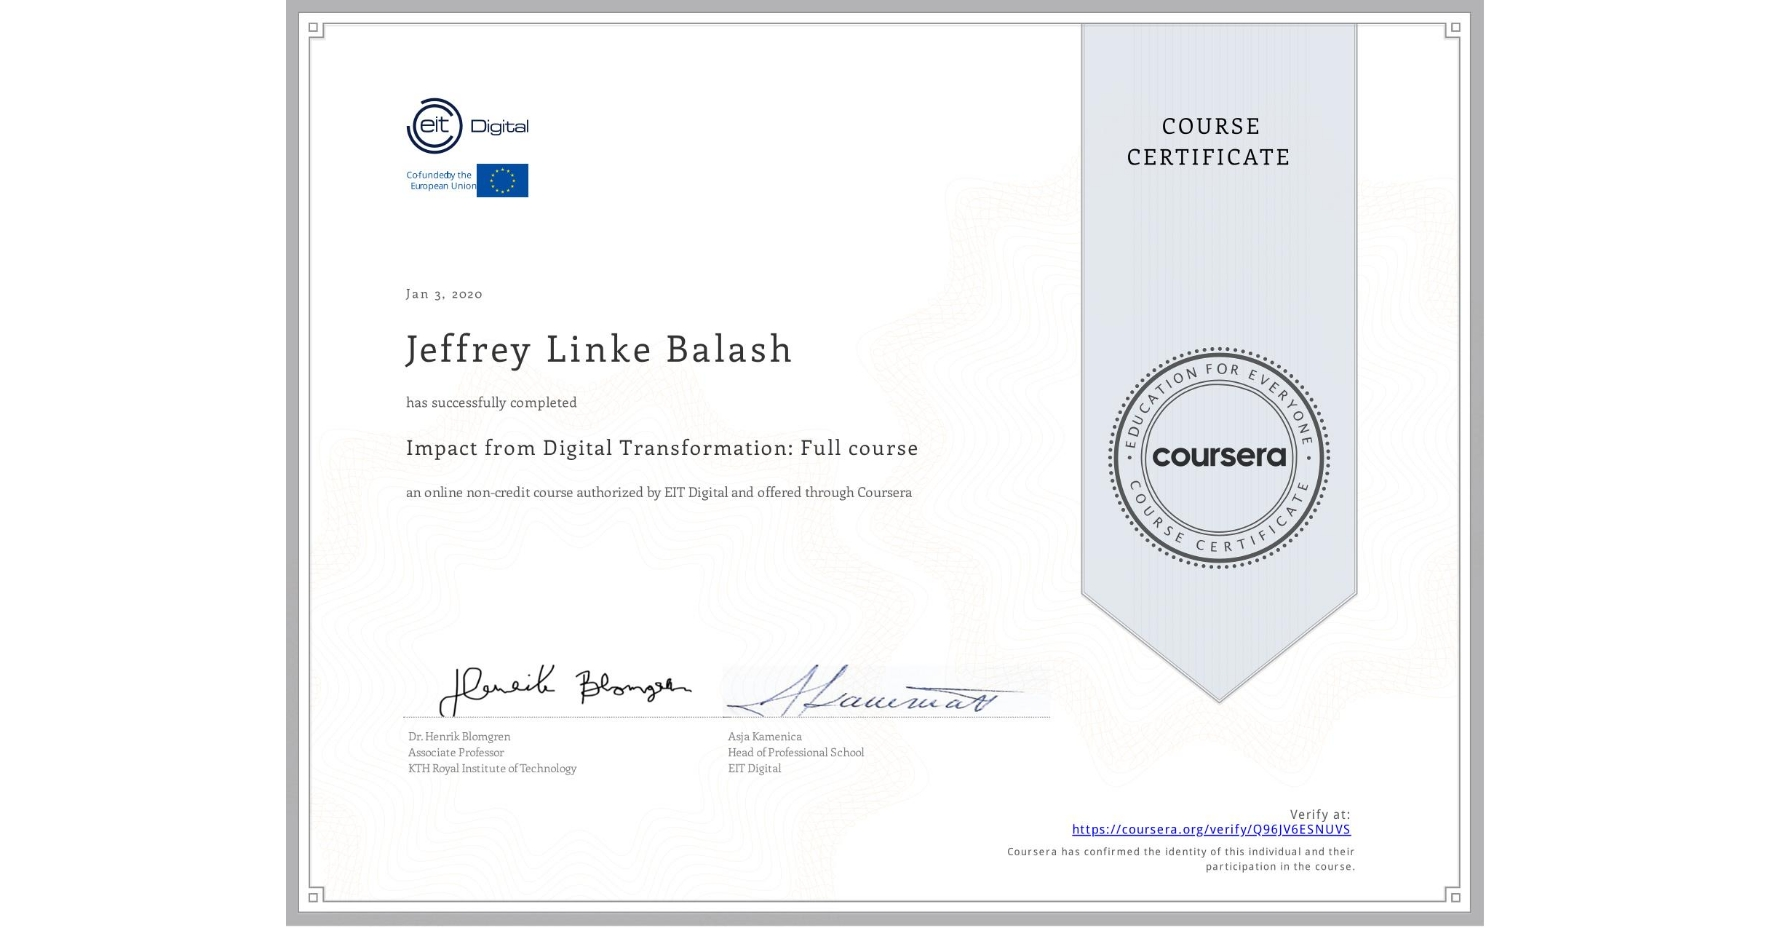 View certificate for Jeffrey Linke Balash, Impact from Digital Transformation: Full course, an online non-credit course authorized by EIT Digital  and offered through Coursera